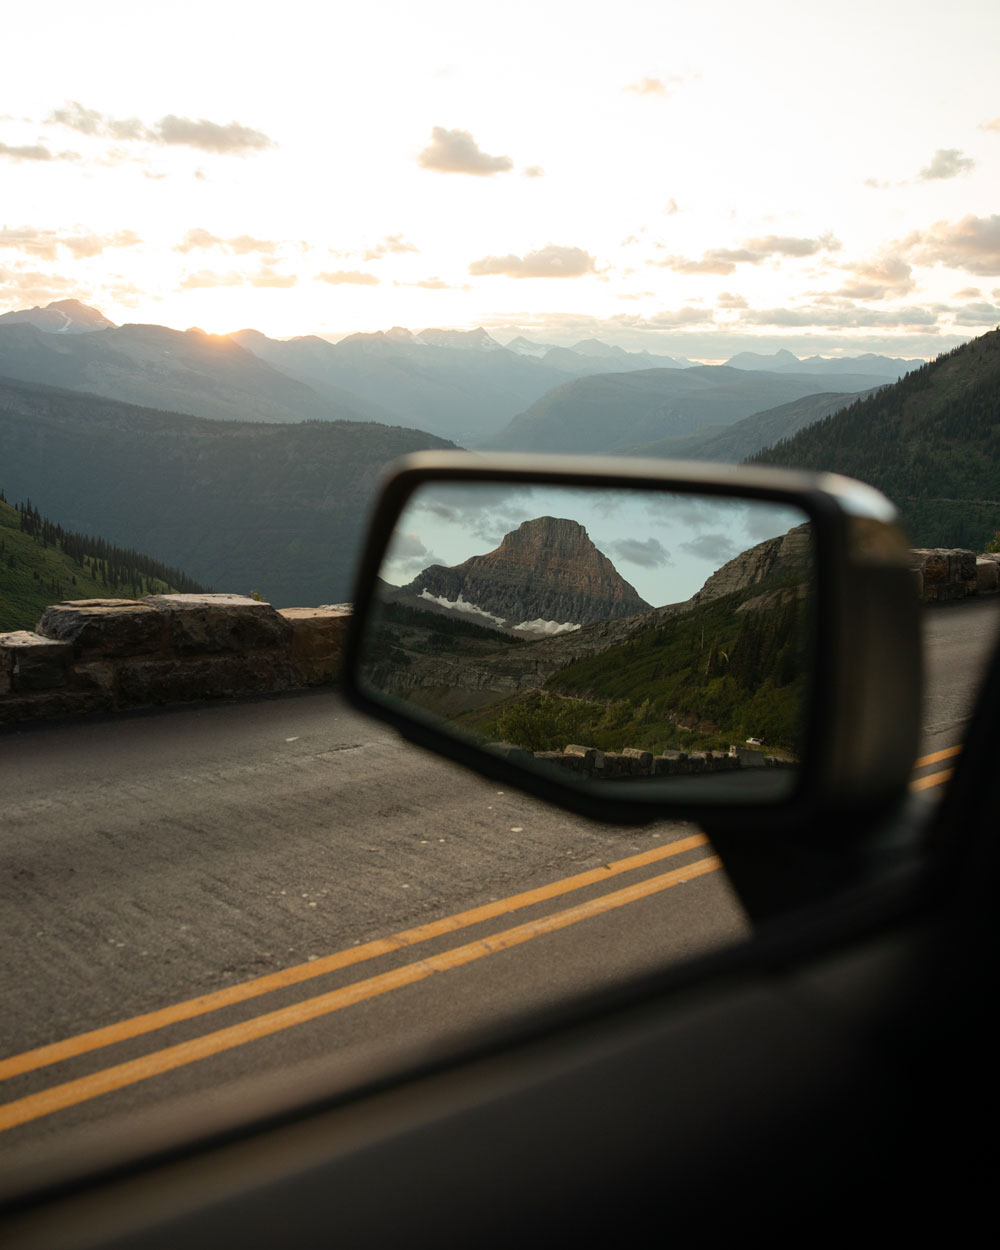 Reflection of Glacier National Prk in car mirror